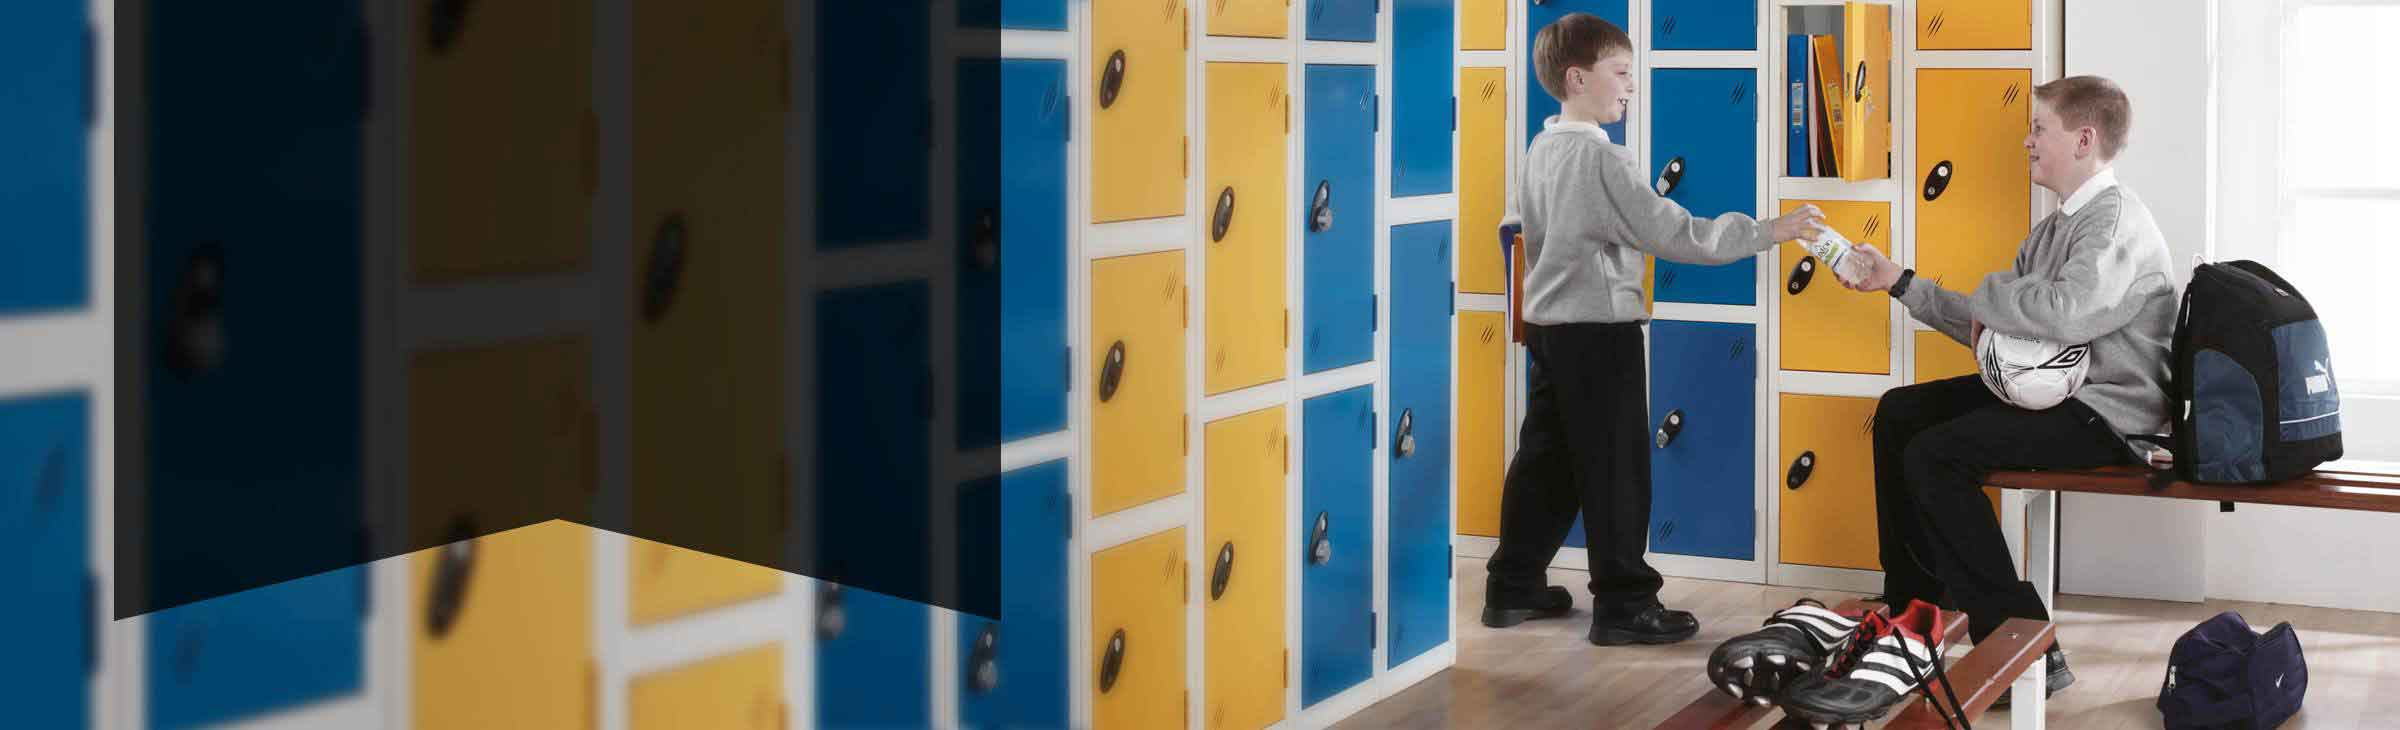 Lockers for Schools and Business